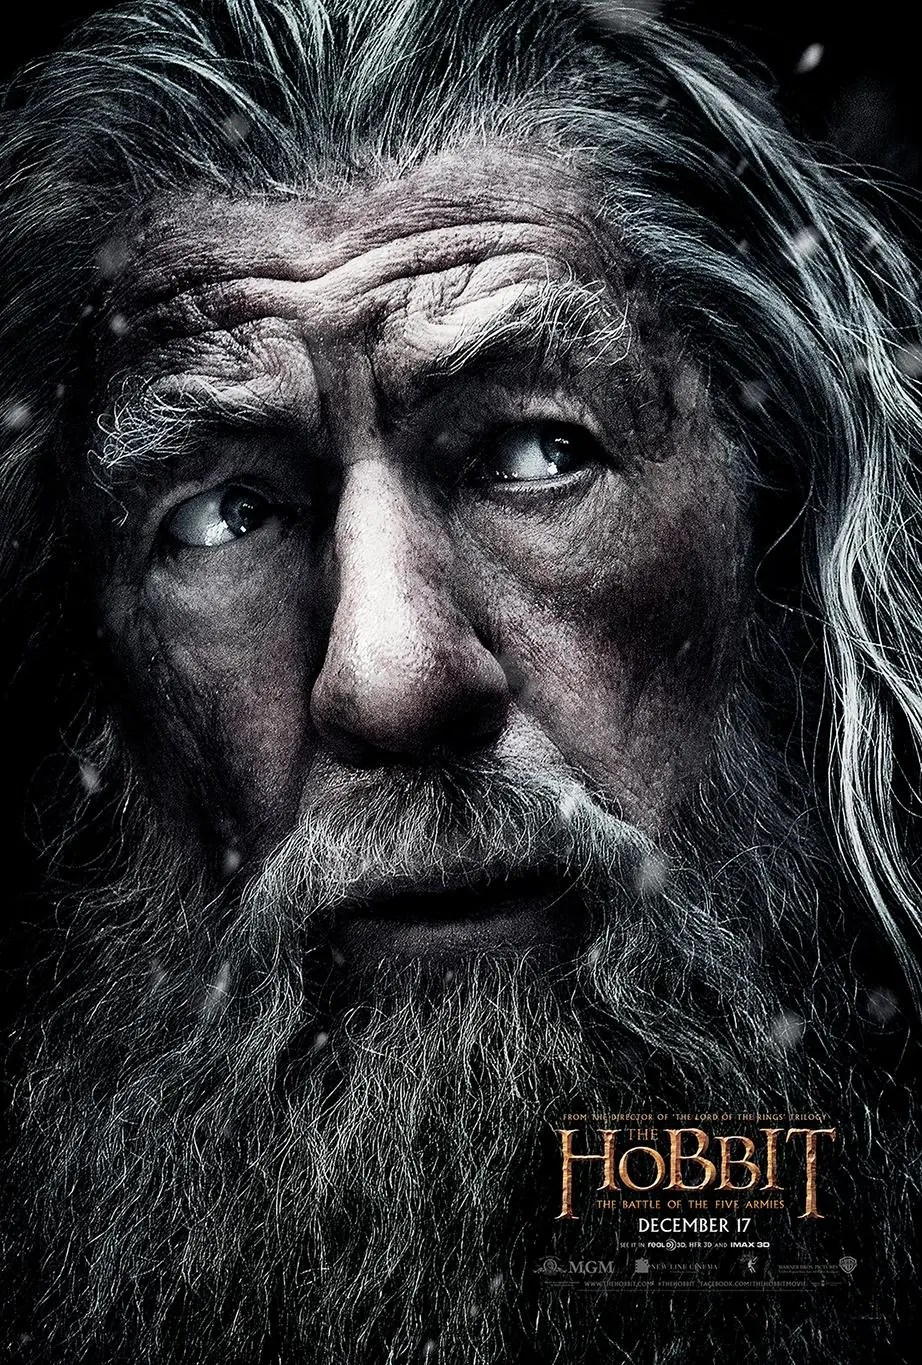 The Hobbit: The Battle of the Five Armies - Gandalf Poster